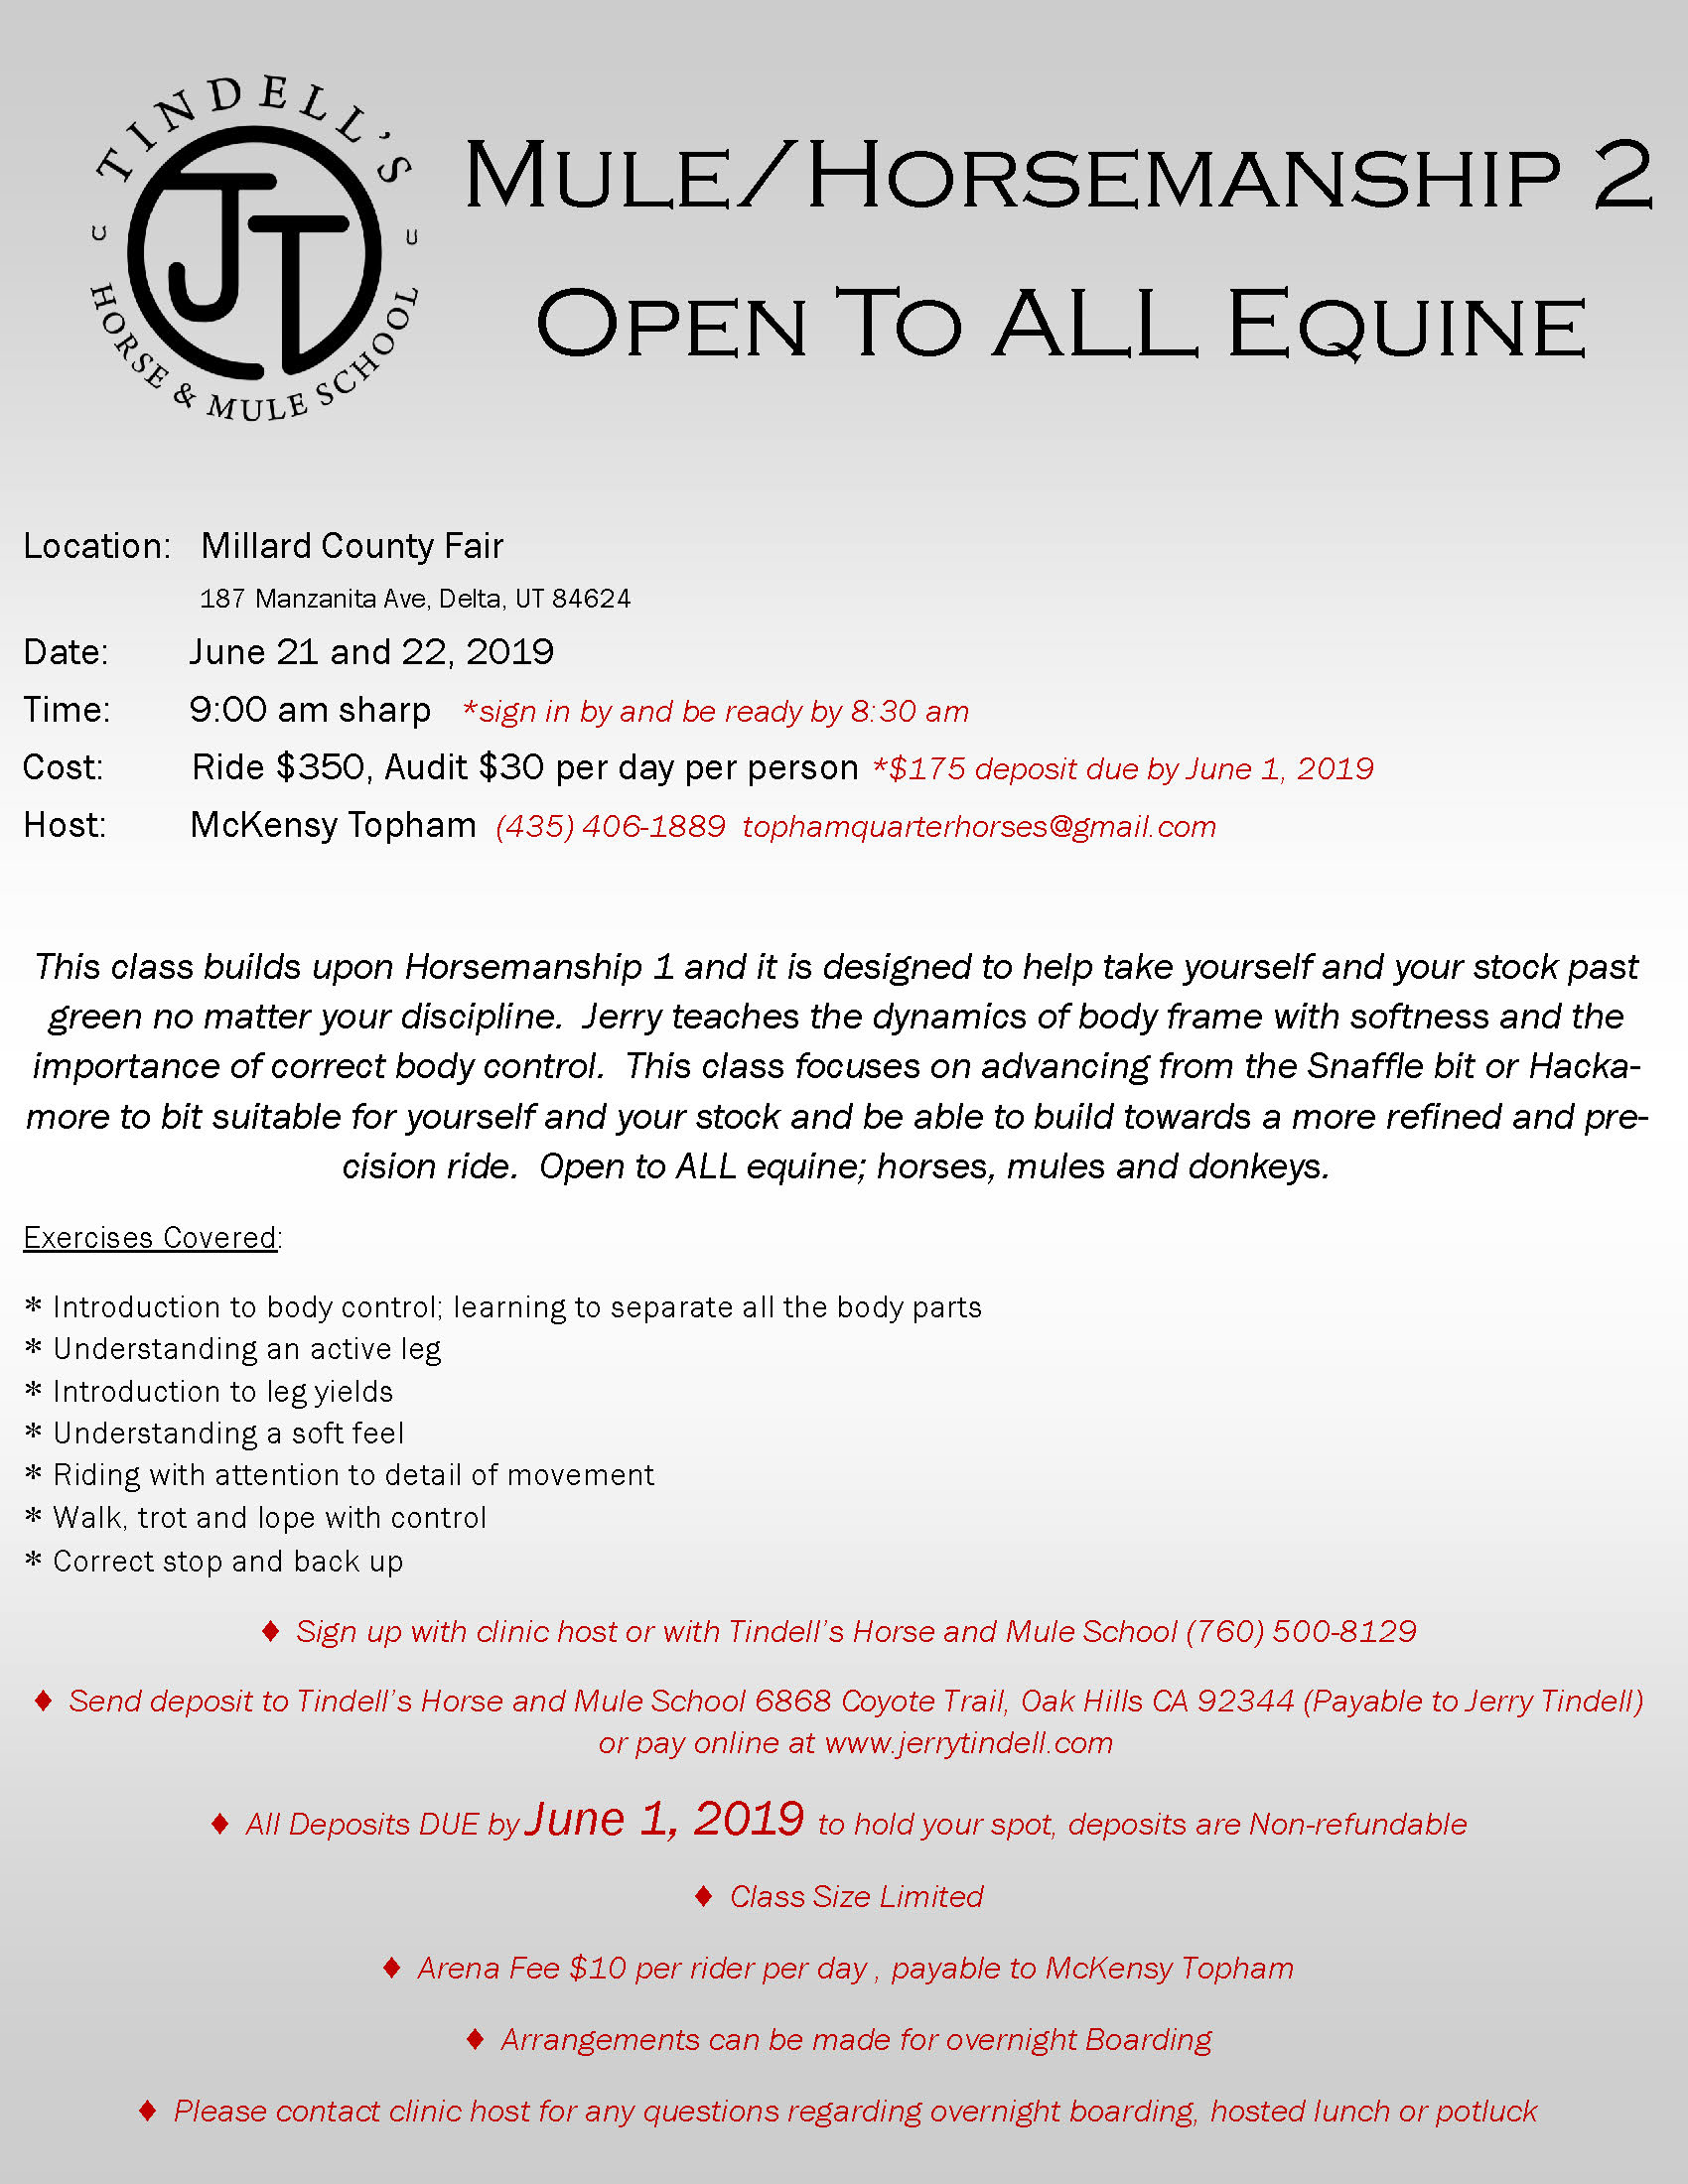 Mule/Horsemanship 2 - Open To ALL Equine - Jerry Tindell